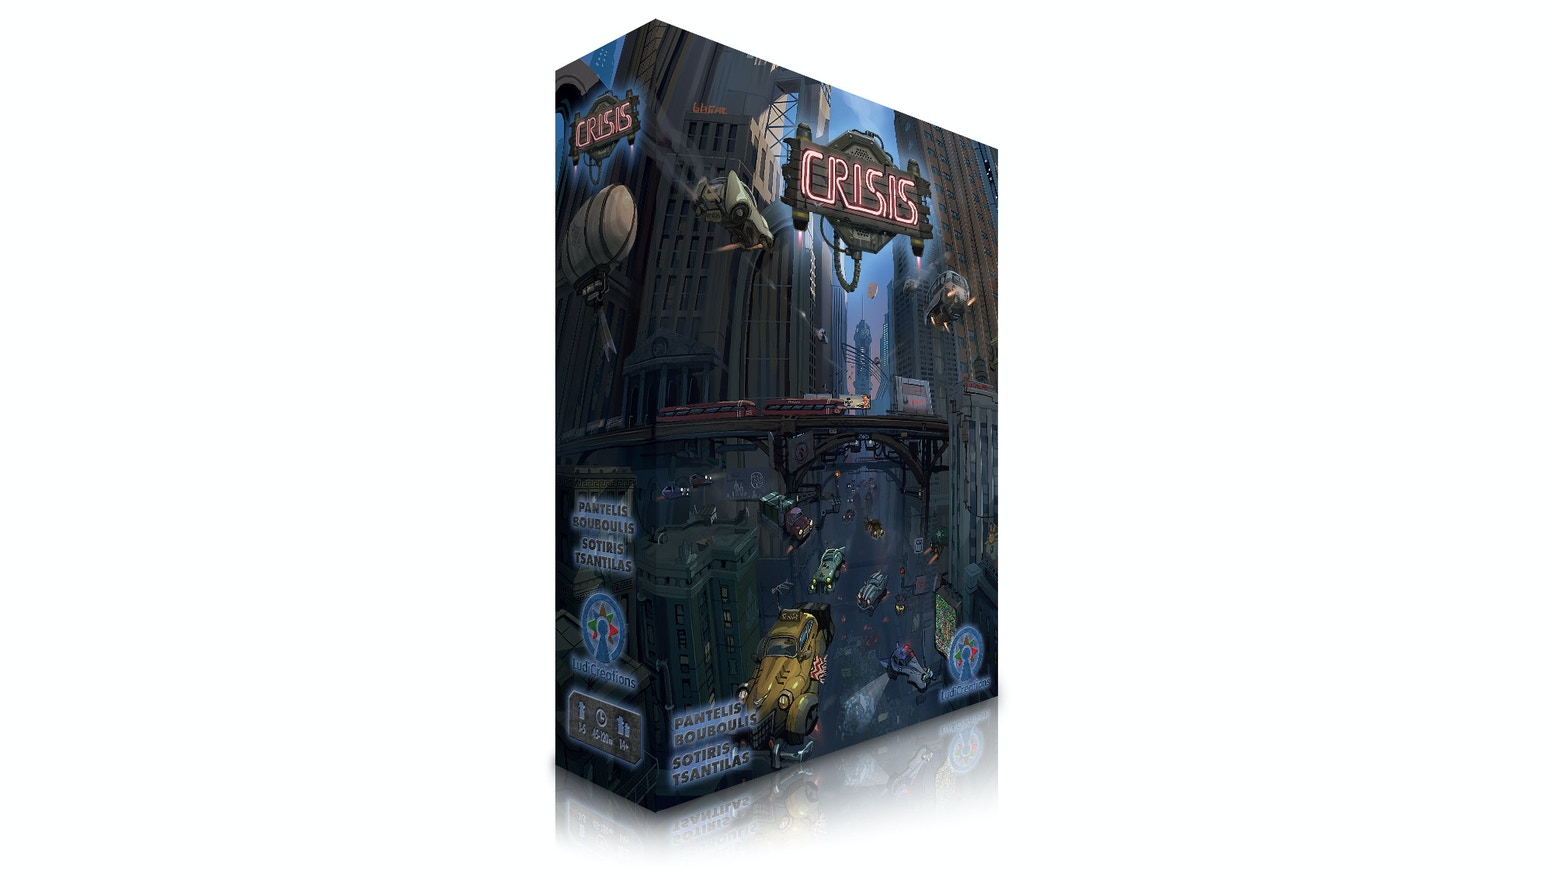 A gritty, dystopian economic game set in a nation on the brink of ruin. Tough decisions & premium components in a dieselpunk setting.